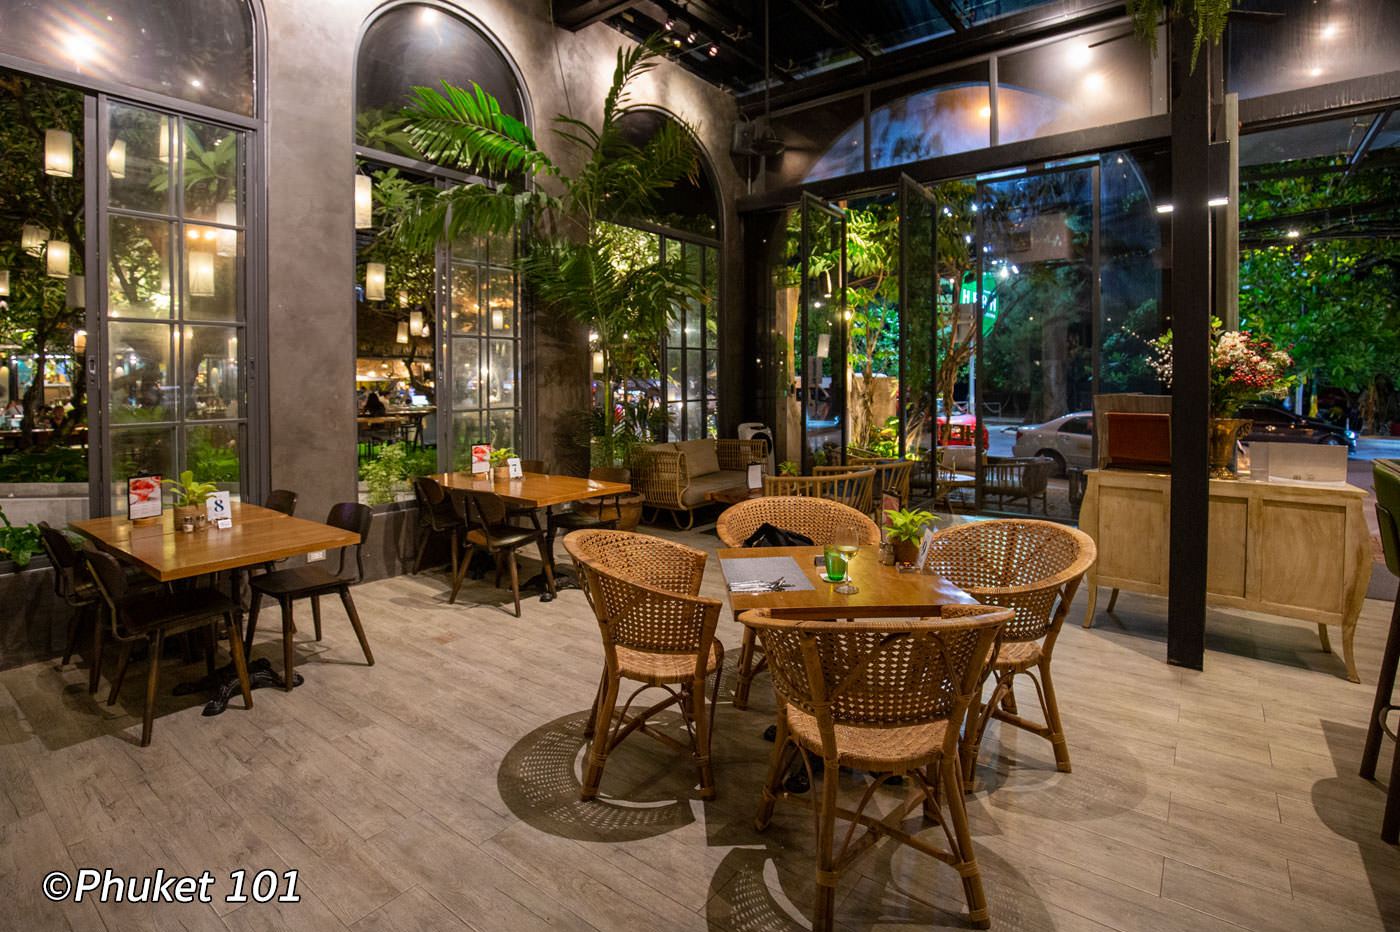 Hern Cafe and Bistro in Patong Beach